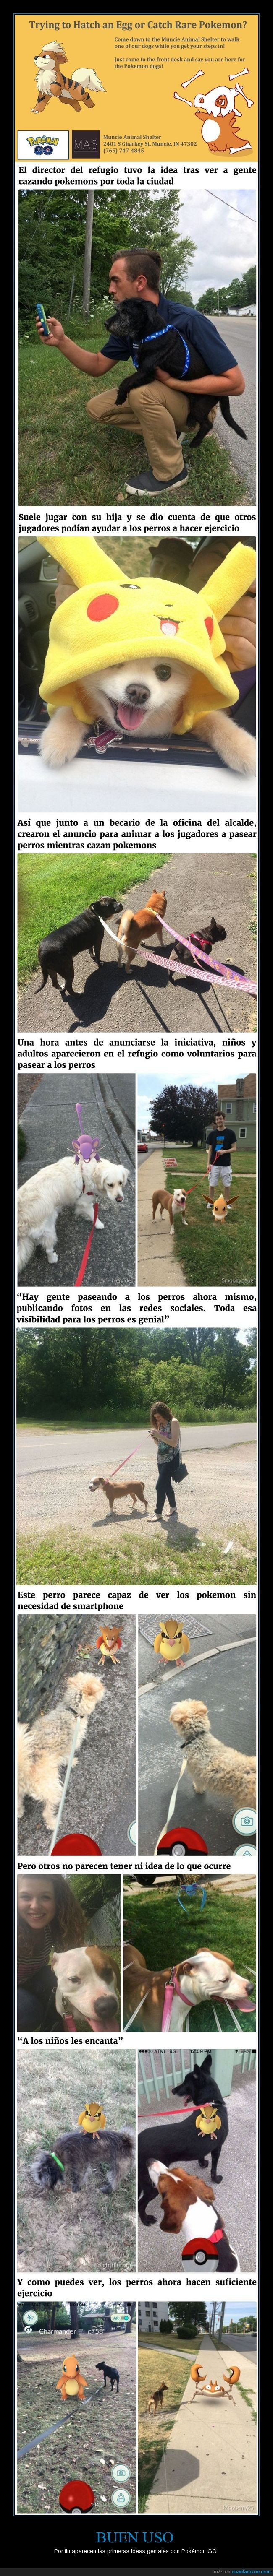 pasear,perrera,perros,pokemon go,refugio animal